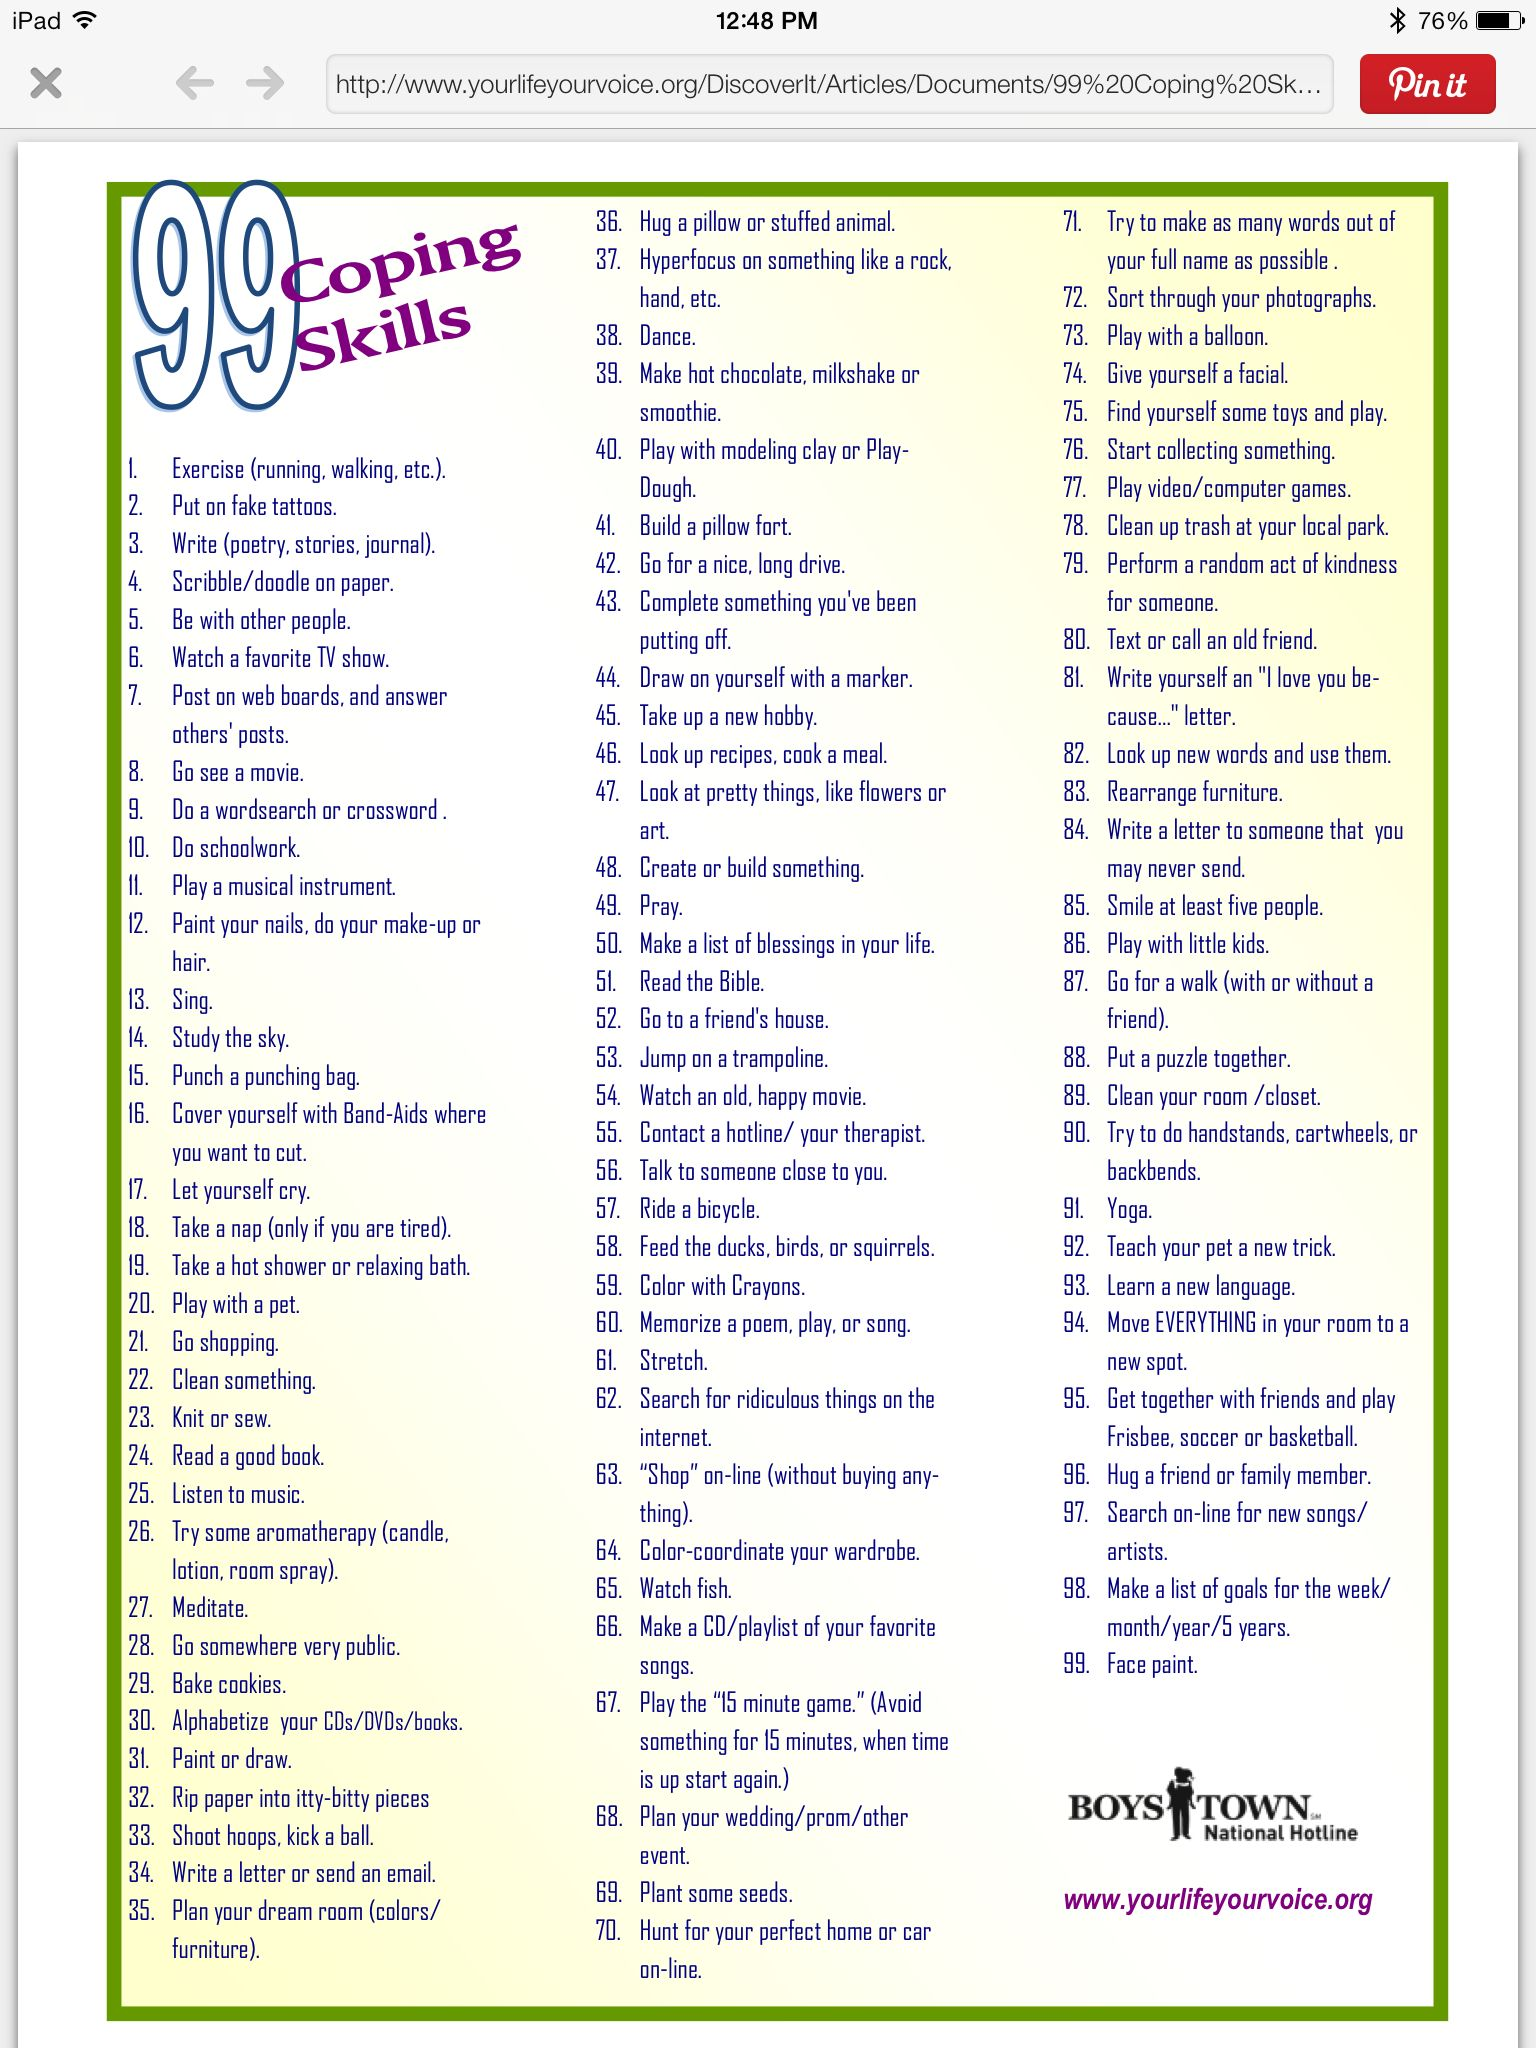 Boys Town List Of 99 Distractions Ways To Cope With